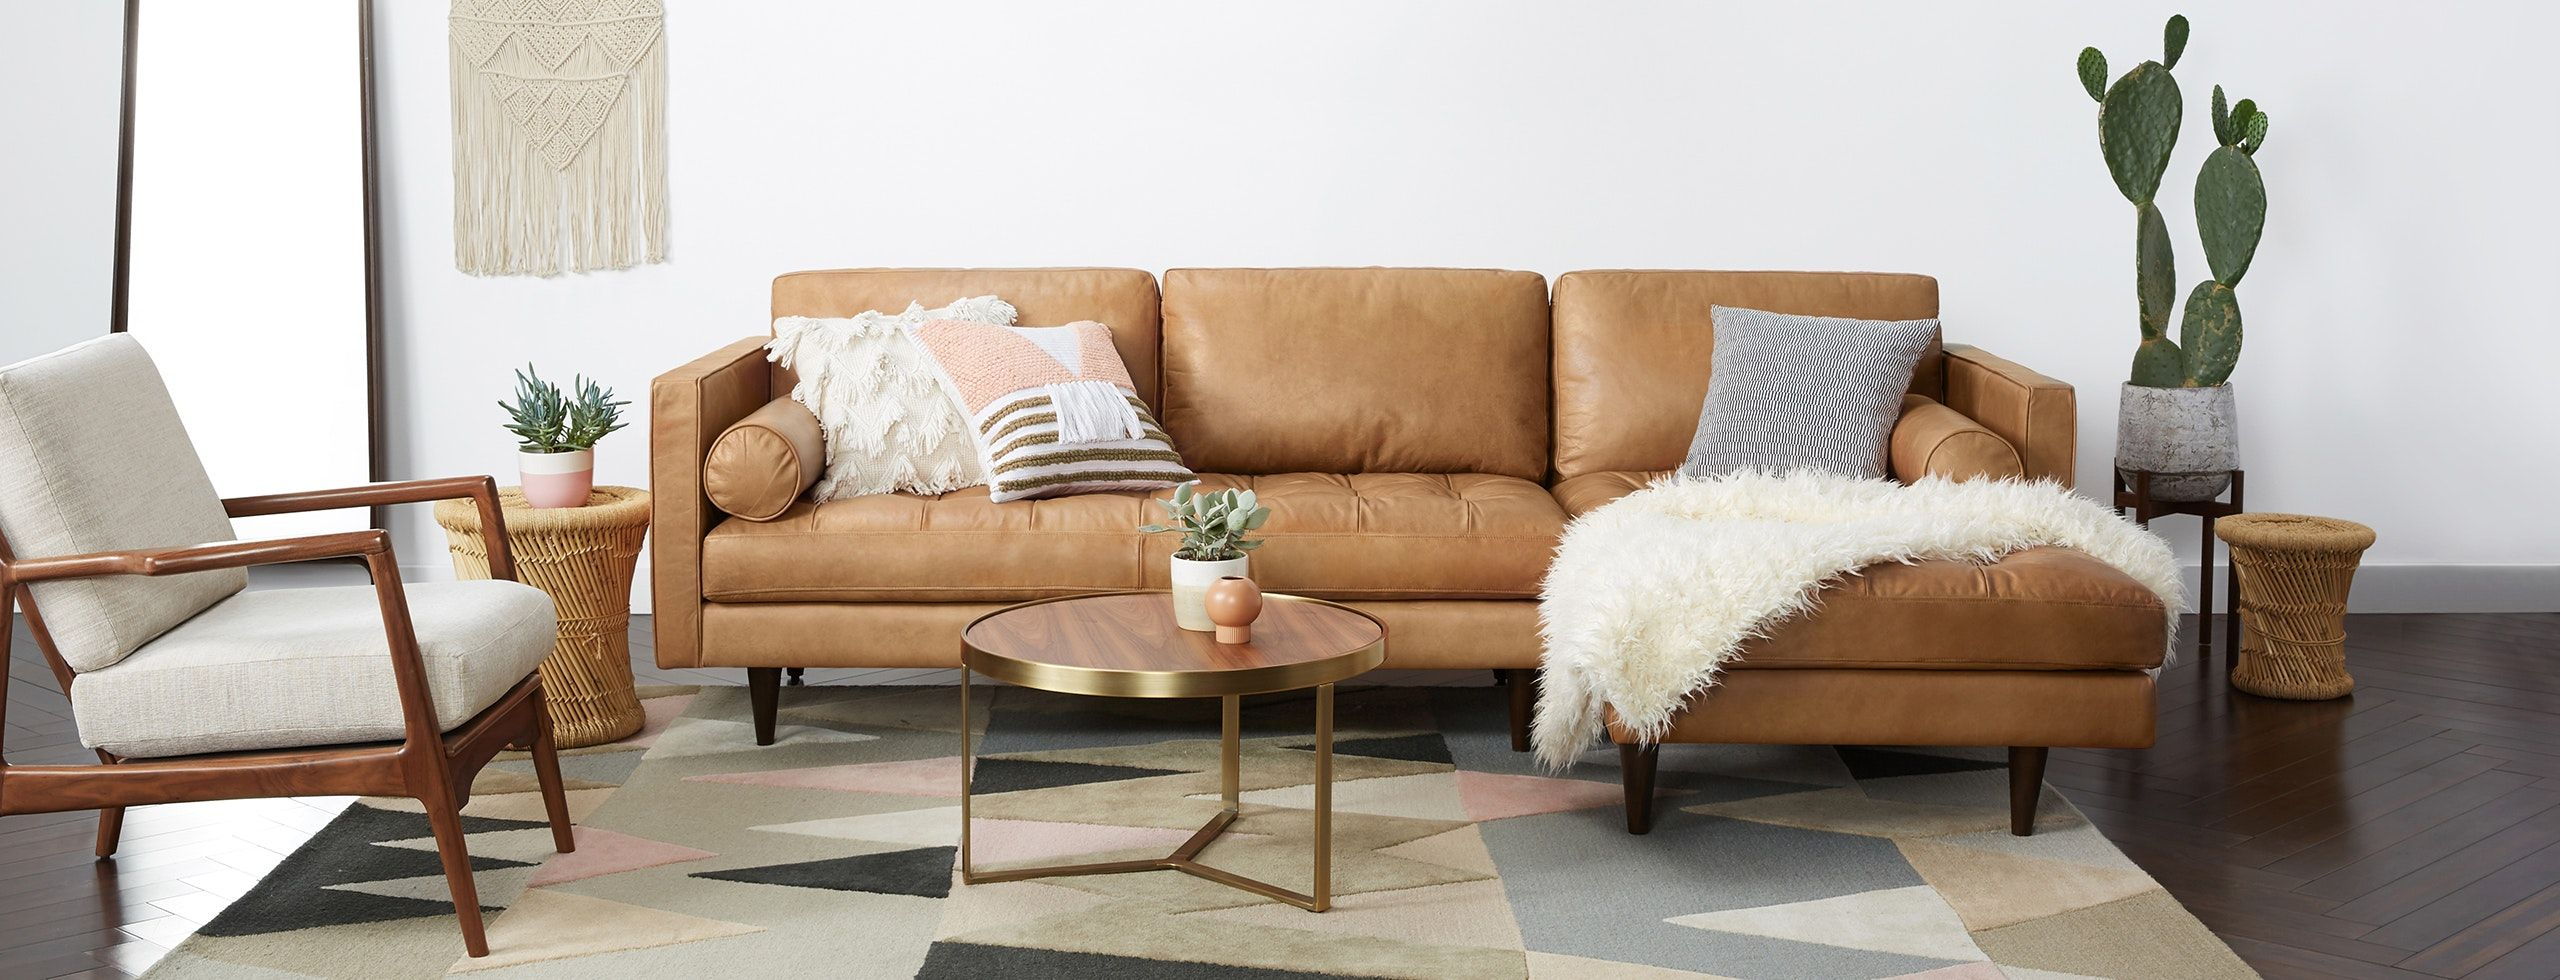 Briar Leather Sectional Livingroom Layout Leather Chaise Sectional Small Apartment Living Room